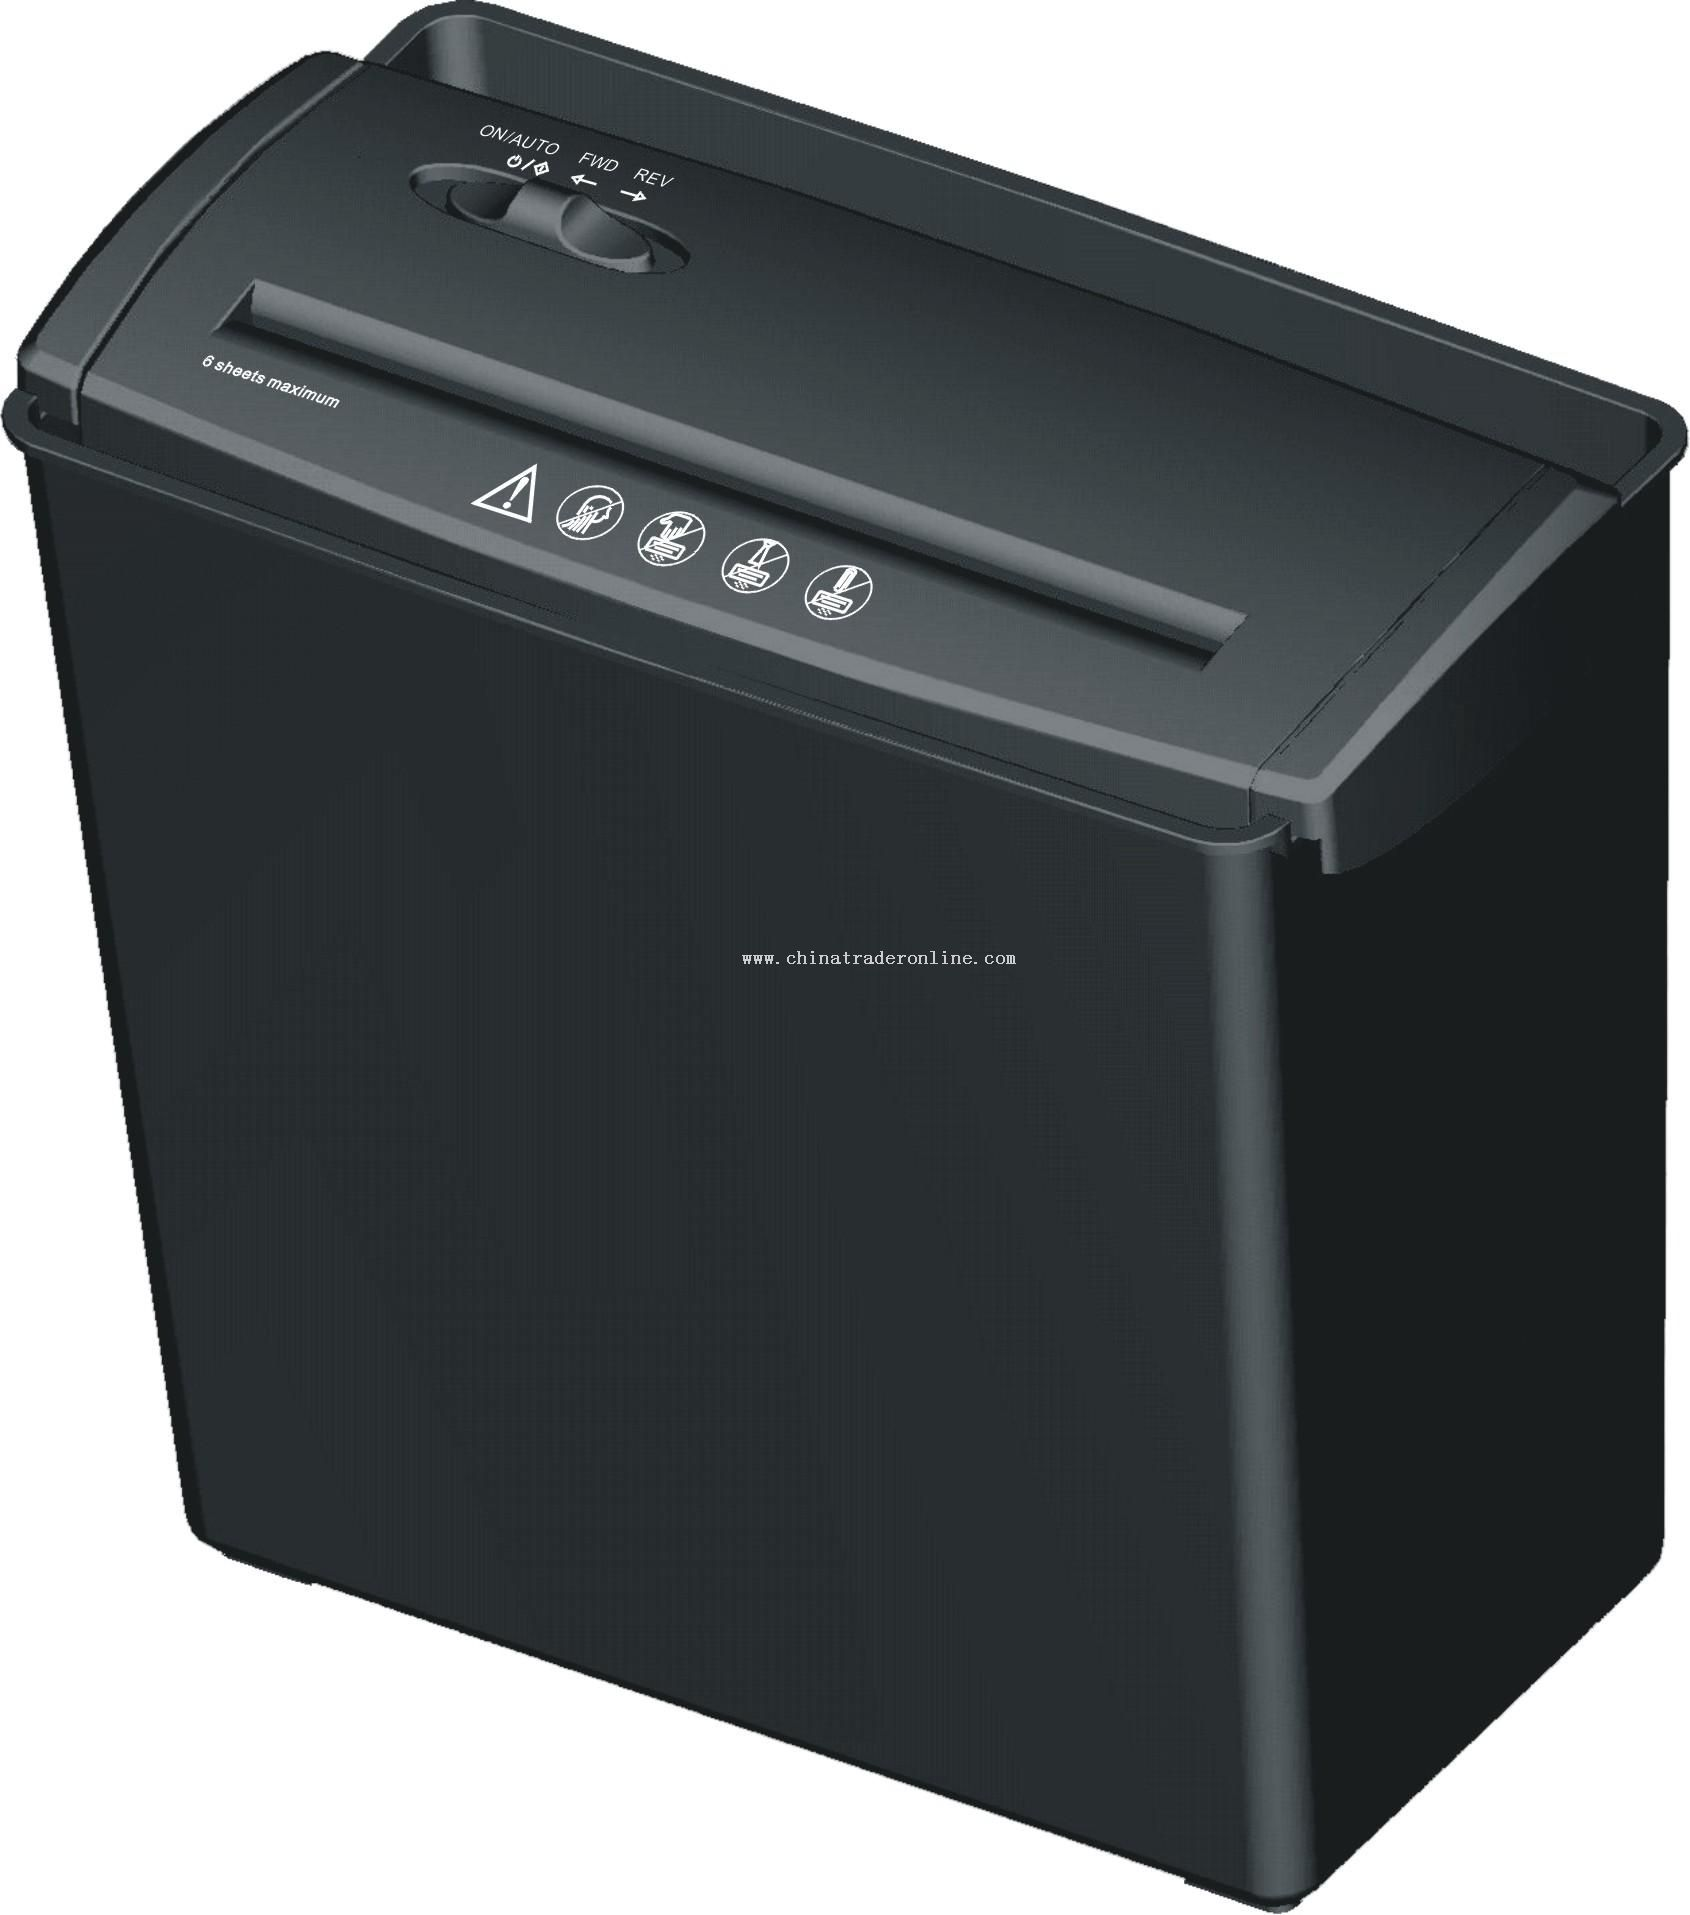 paper shredder from China